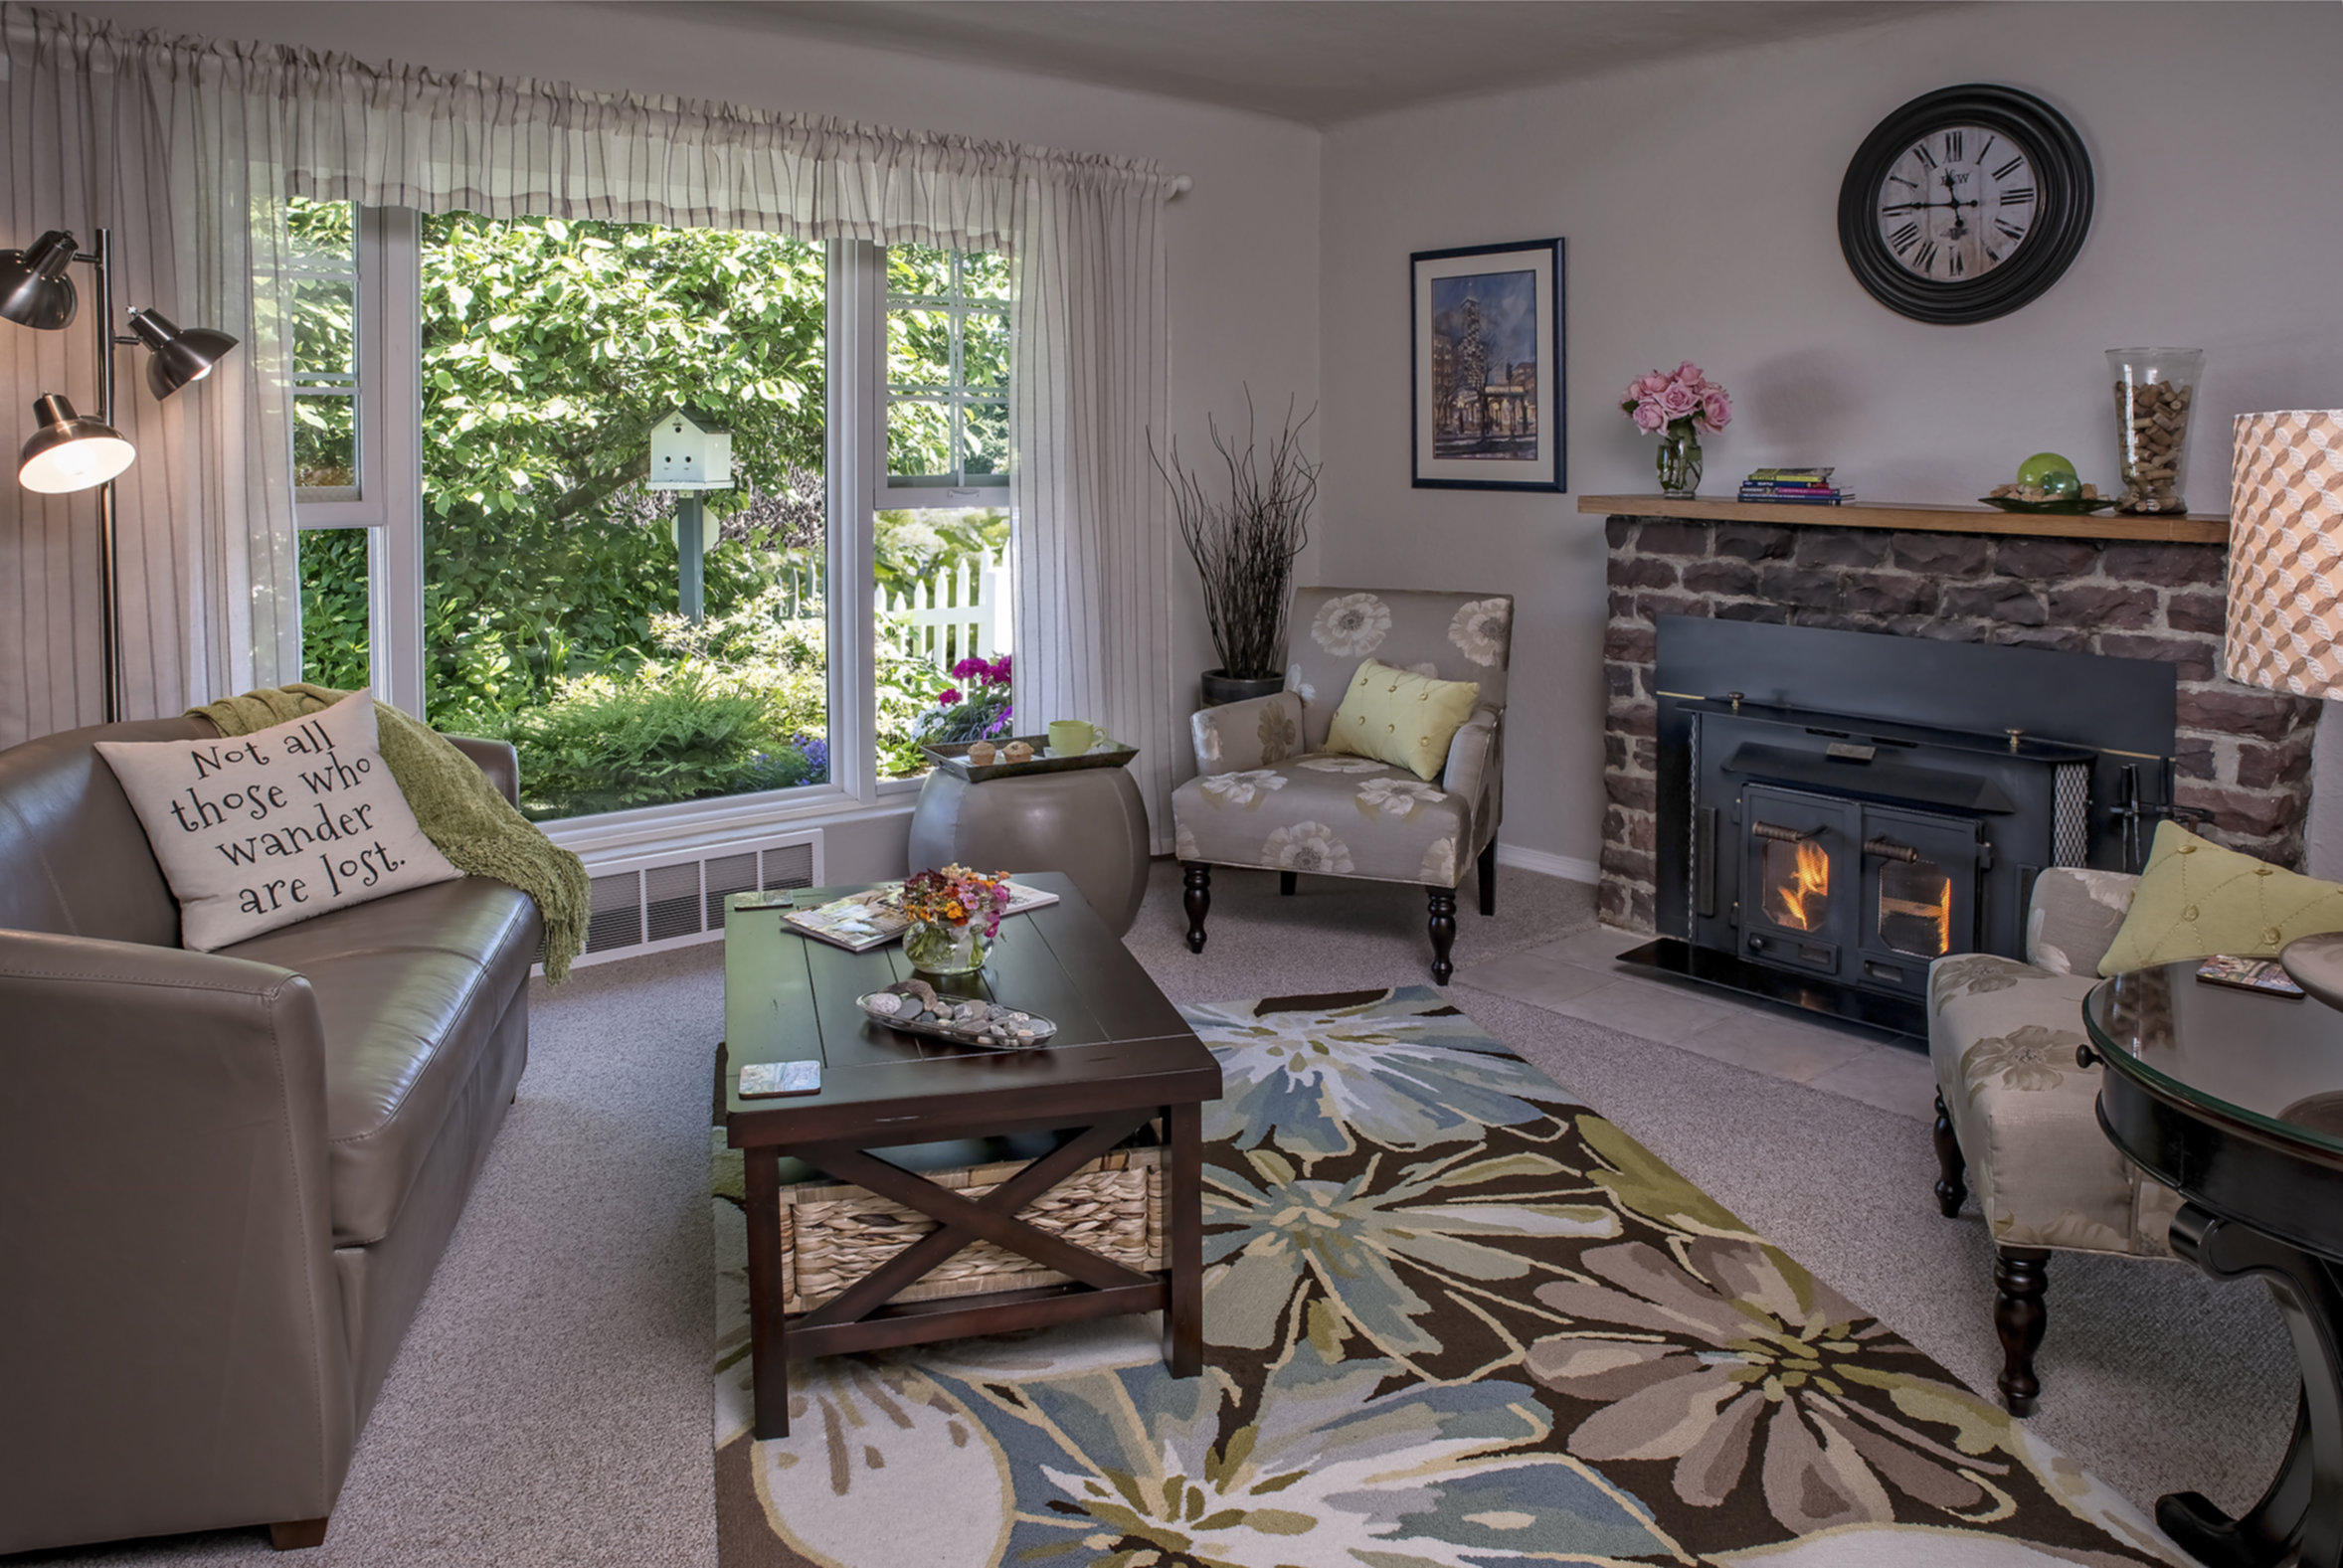 A living room filled with furniture and a fire place at The Guest House Bed & Breakfast.